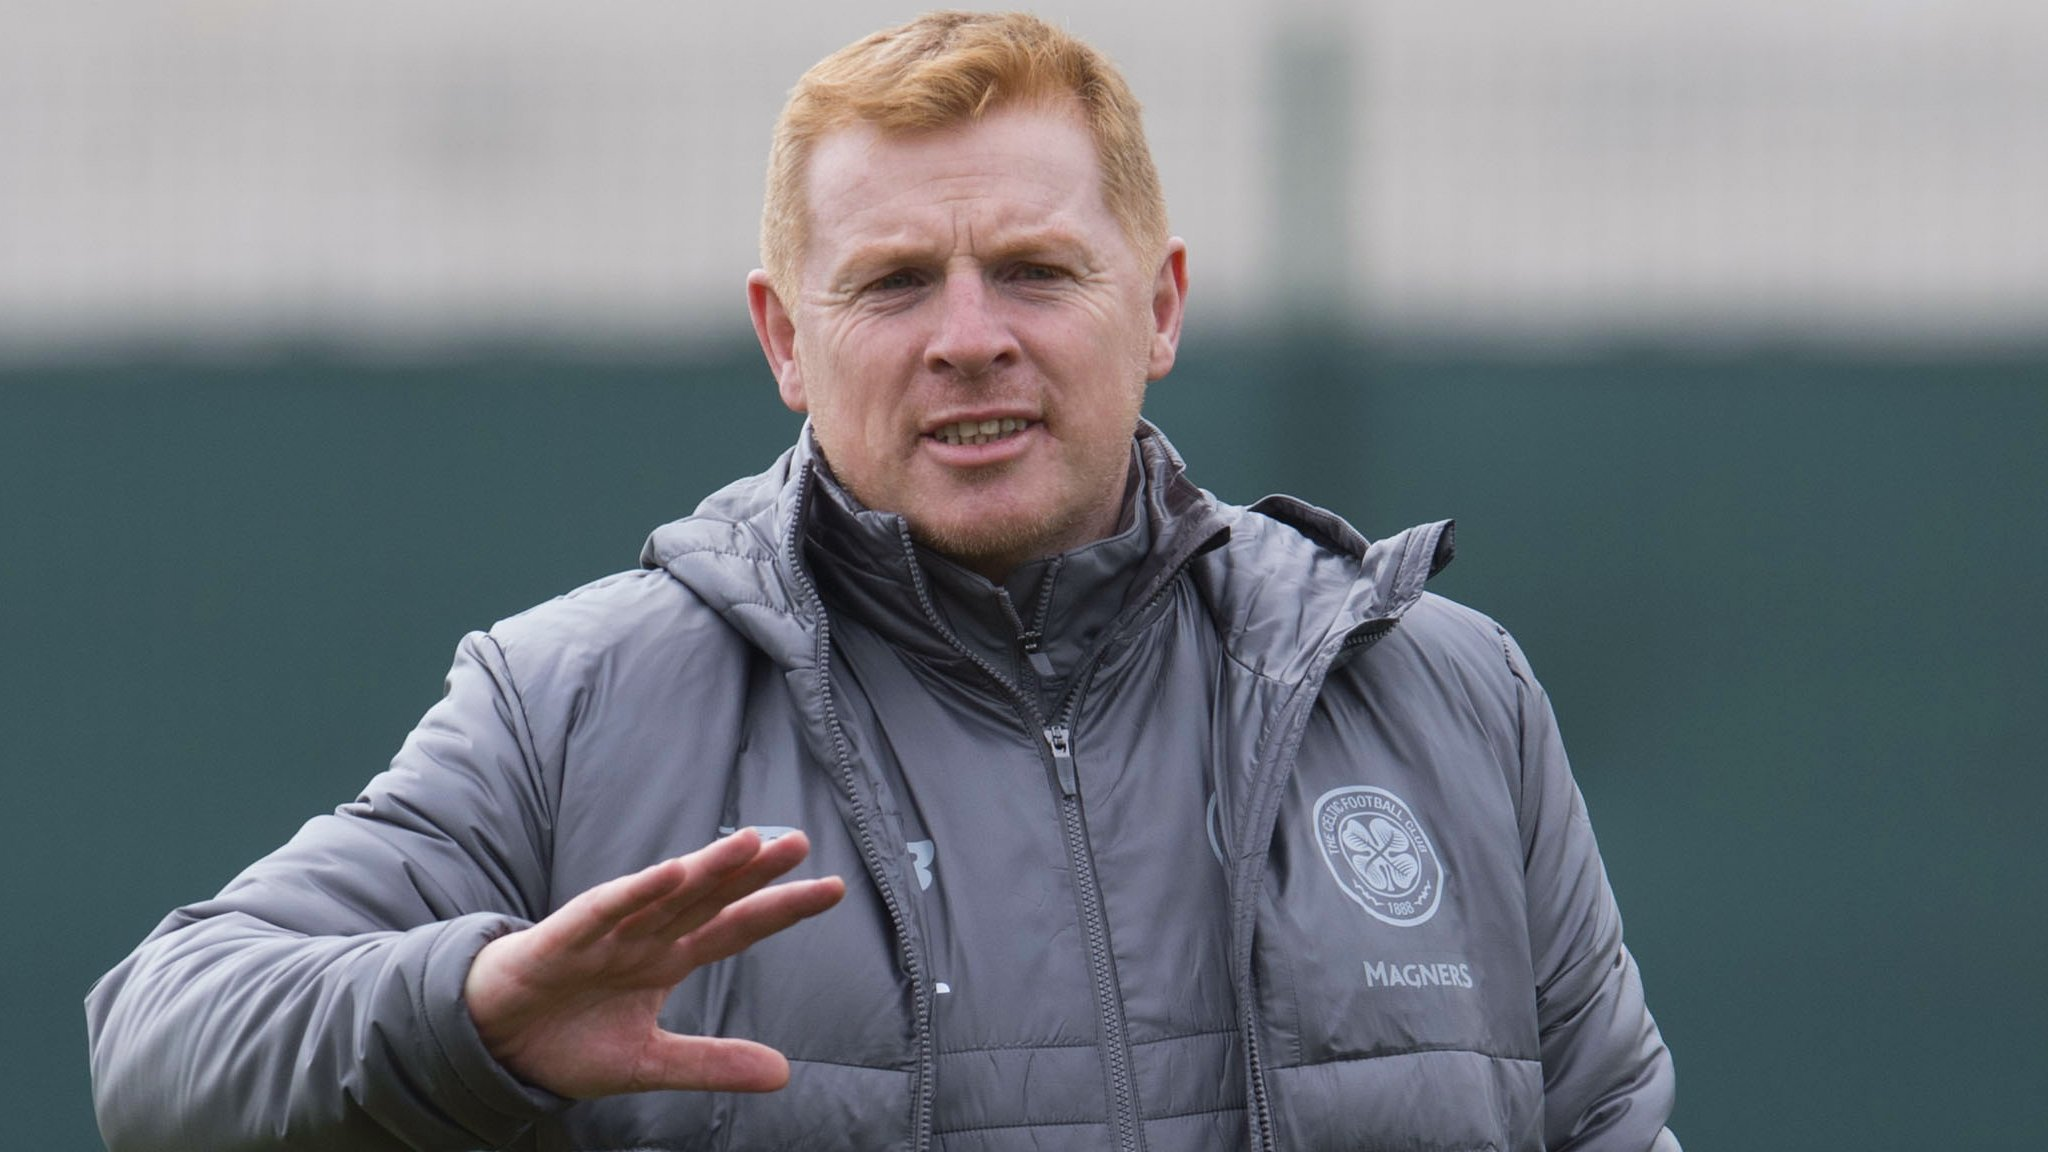 Scotland manager should be a Scot - Lennon